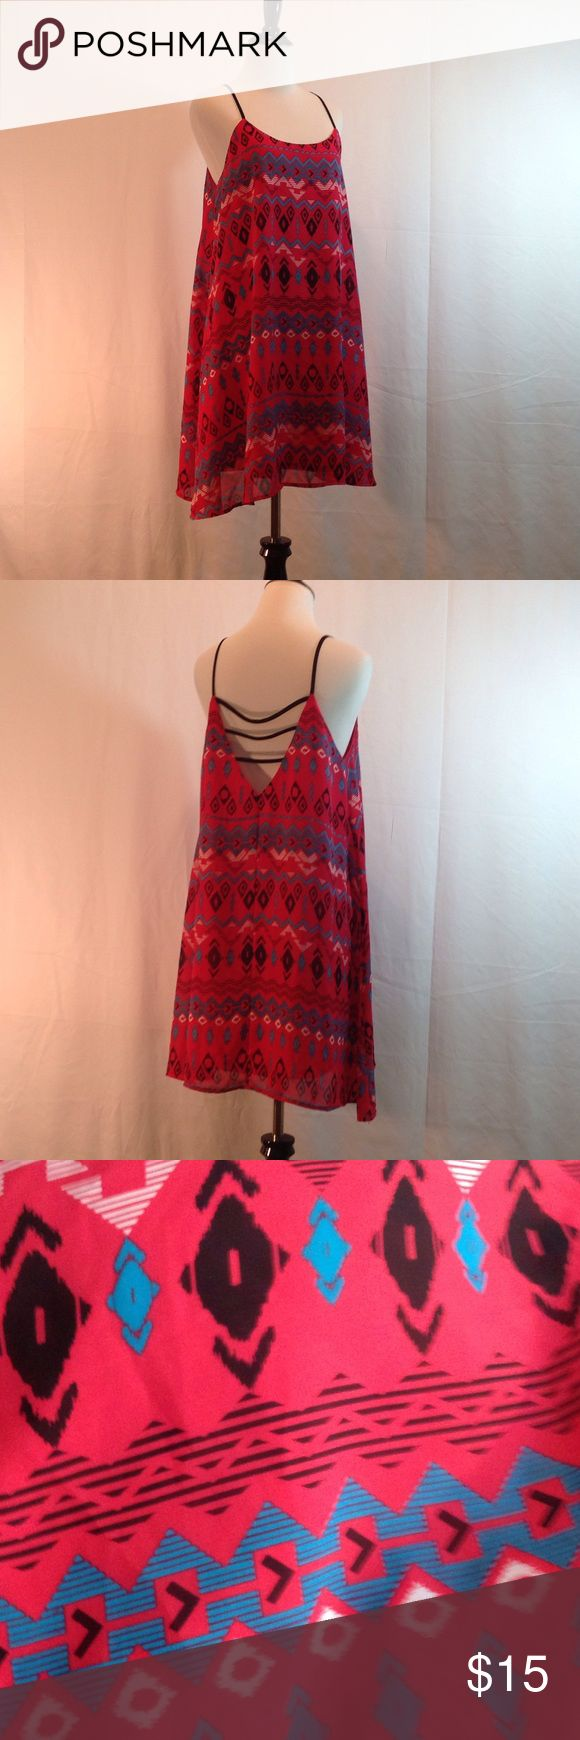 """⭐️Pink Aztec print dress⭐️ Adorable hot pink Aztec dress. 34"""" long not counting straps. Arm pit to arm pit around is 38""""-40"""". A-line style. Nicely lined. Charlotte Russe Dresses Midi"""